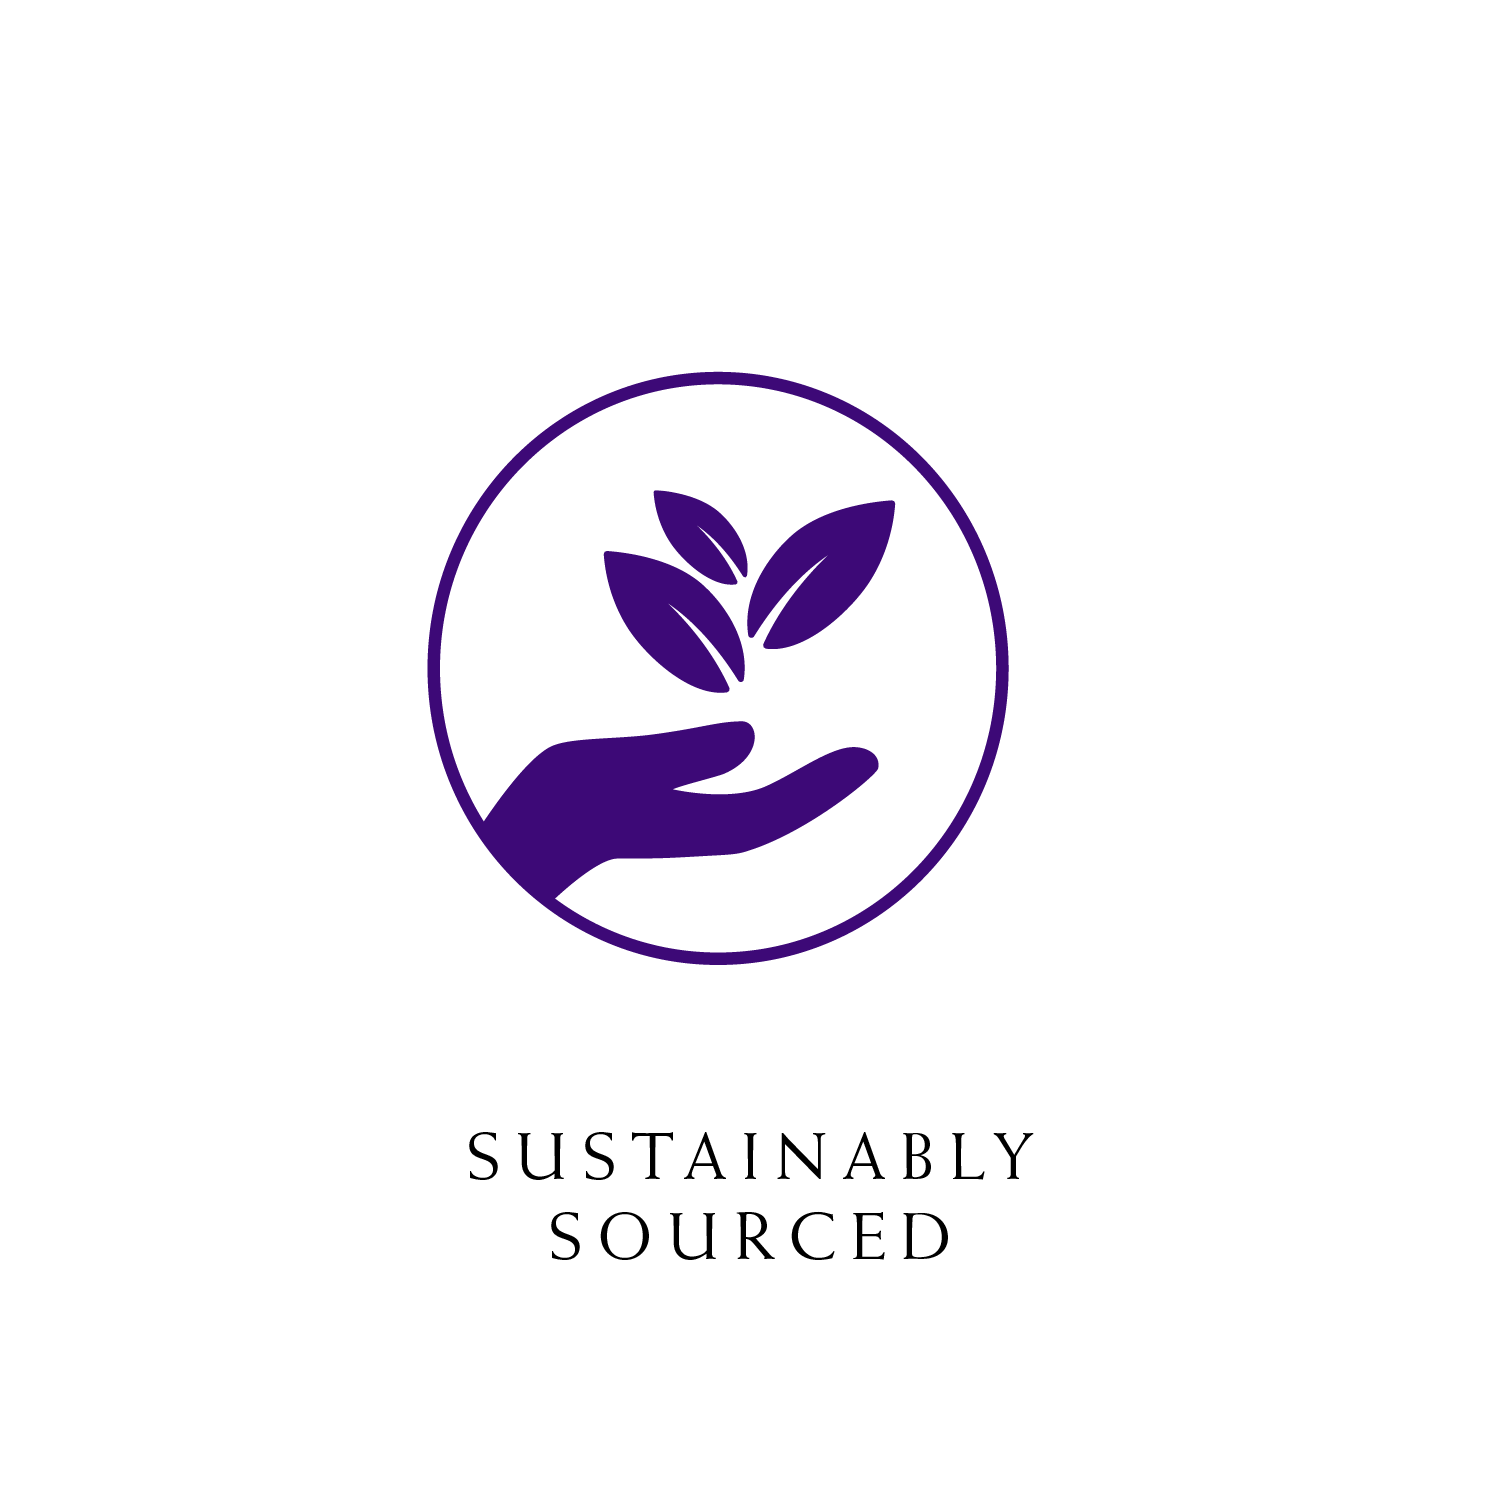 KPO-icons-sustainably-sourced.png